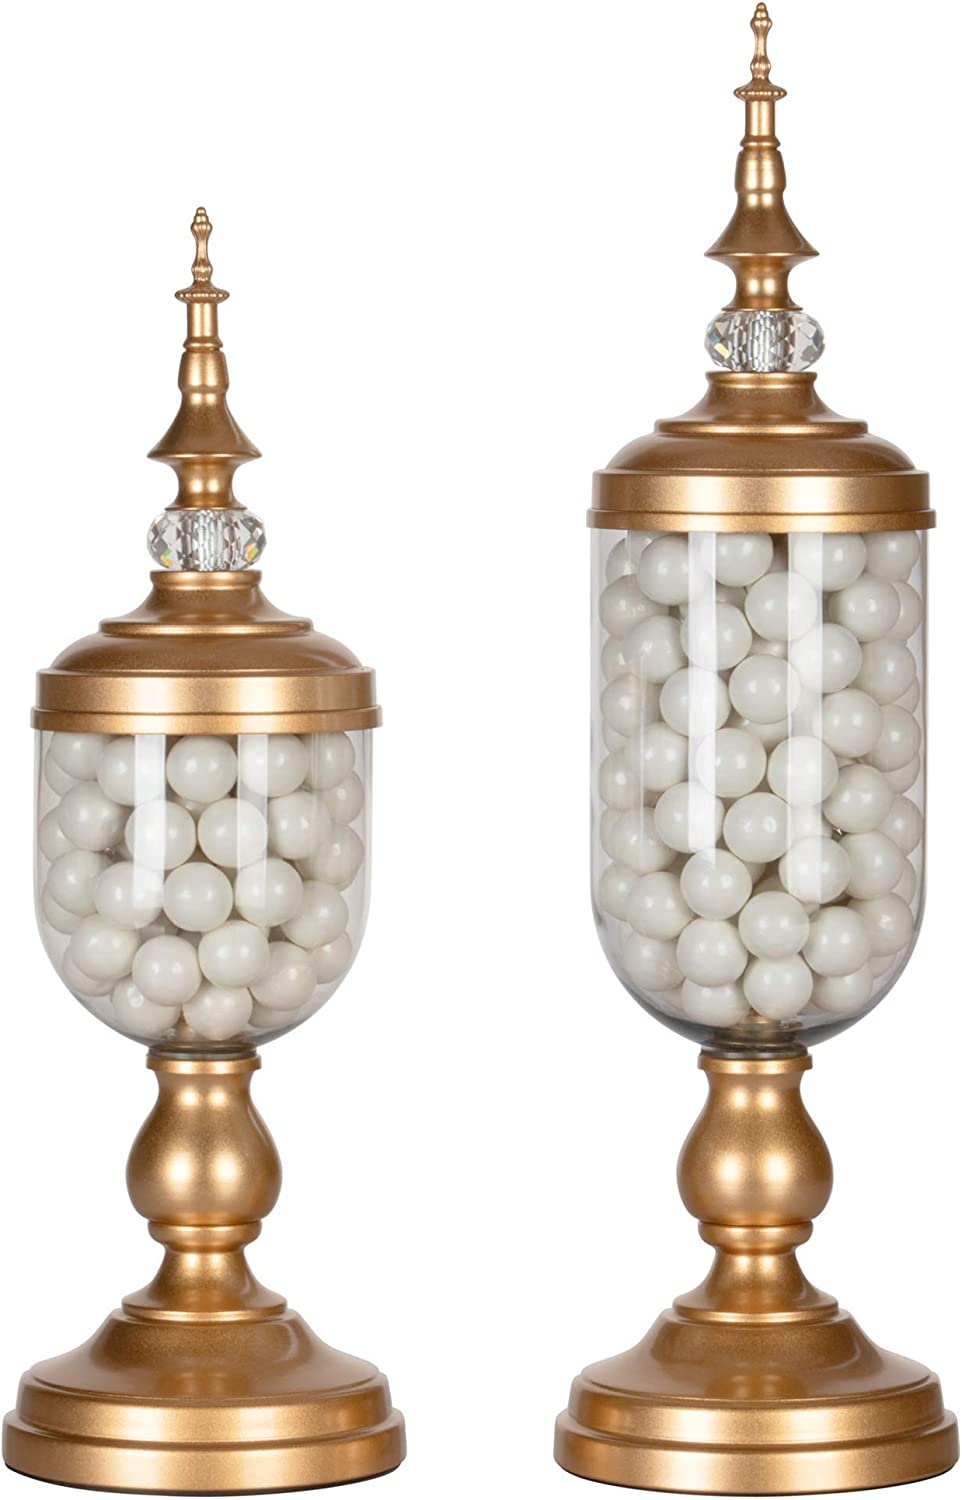 Amalfi Decor Apothecary Jars Clear Glass Candy Dish Holder with Metal Lids Cookie Jar Buffet Display, Gold, Set of 2